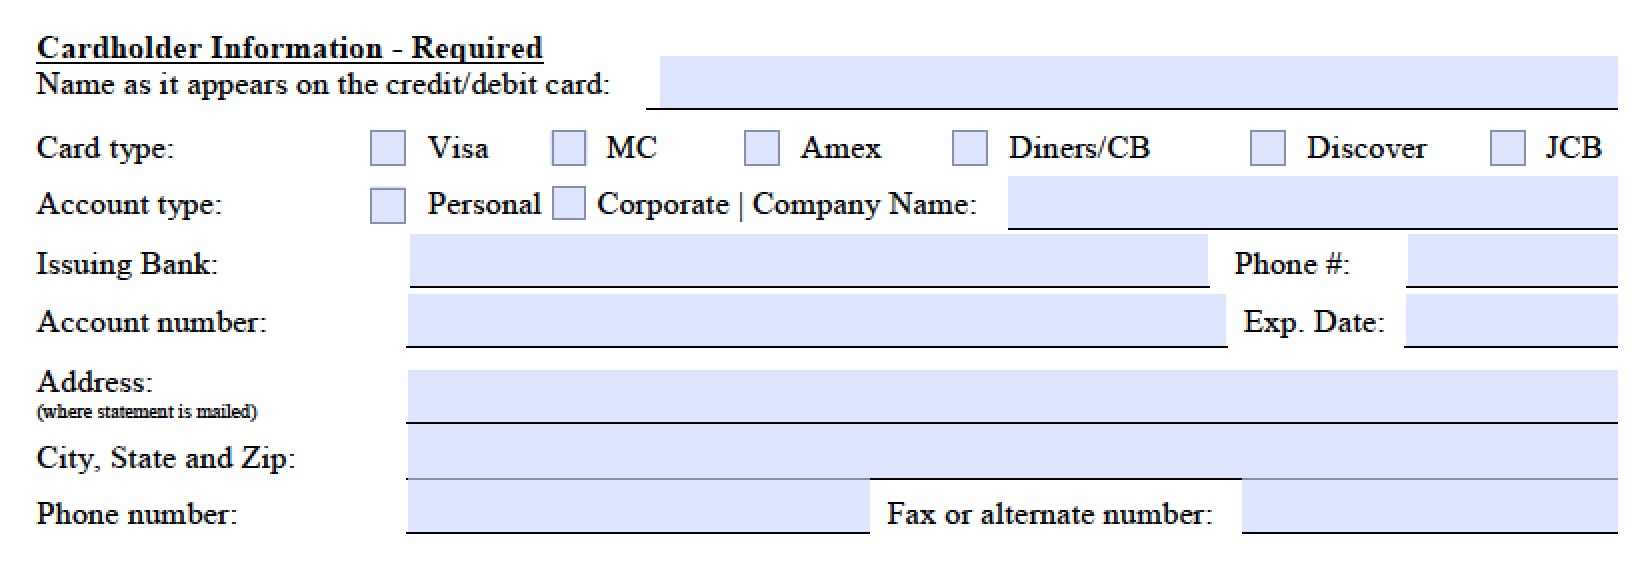 Download Marriott Credit Card Authorization Form Template | PDF ...